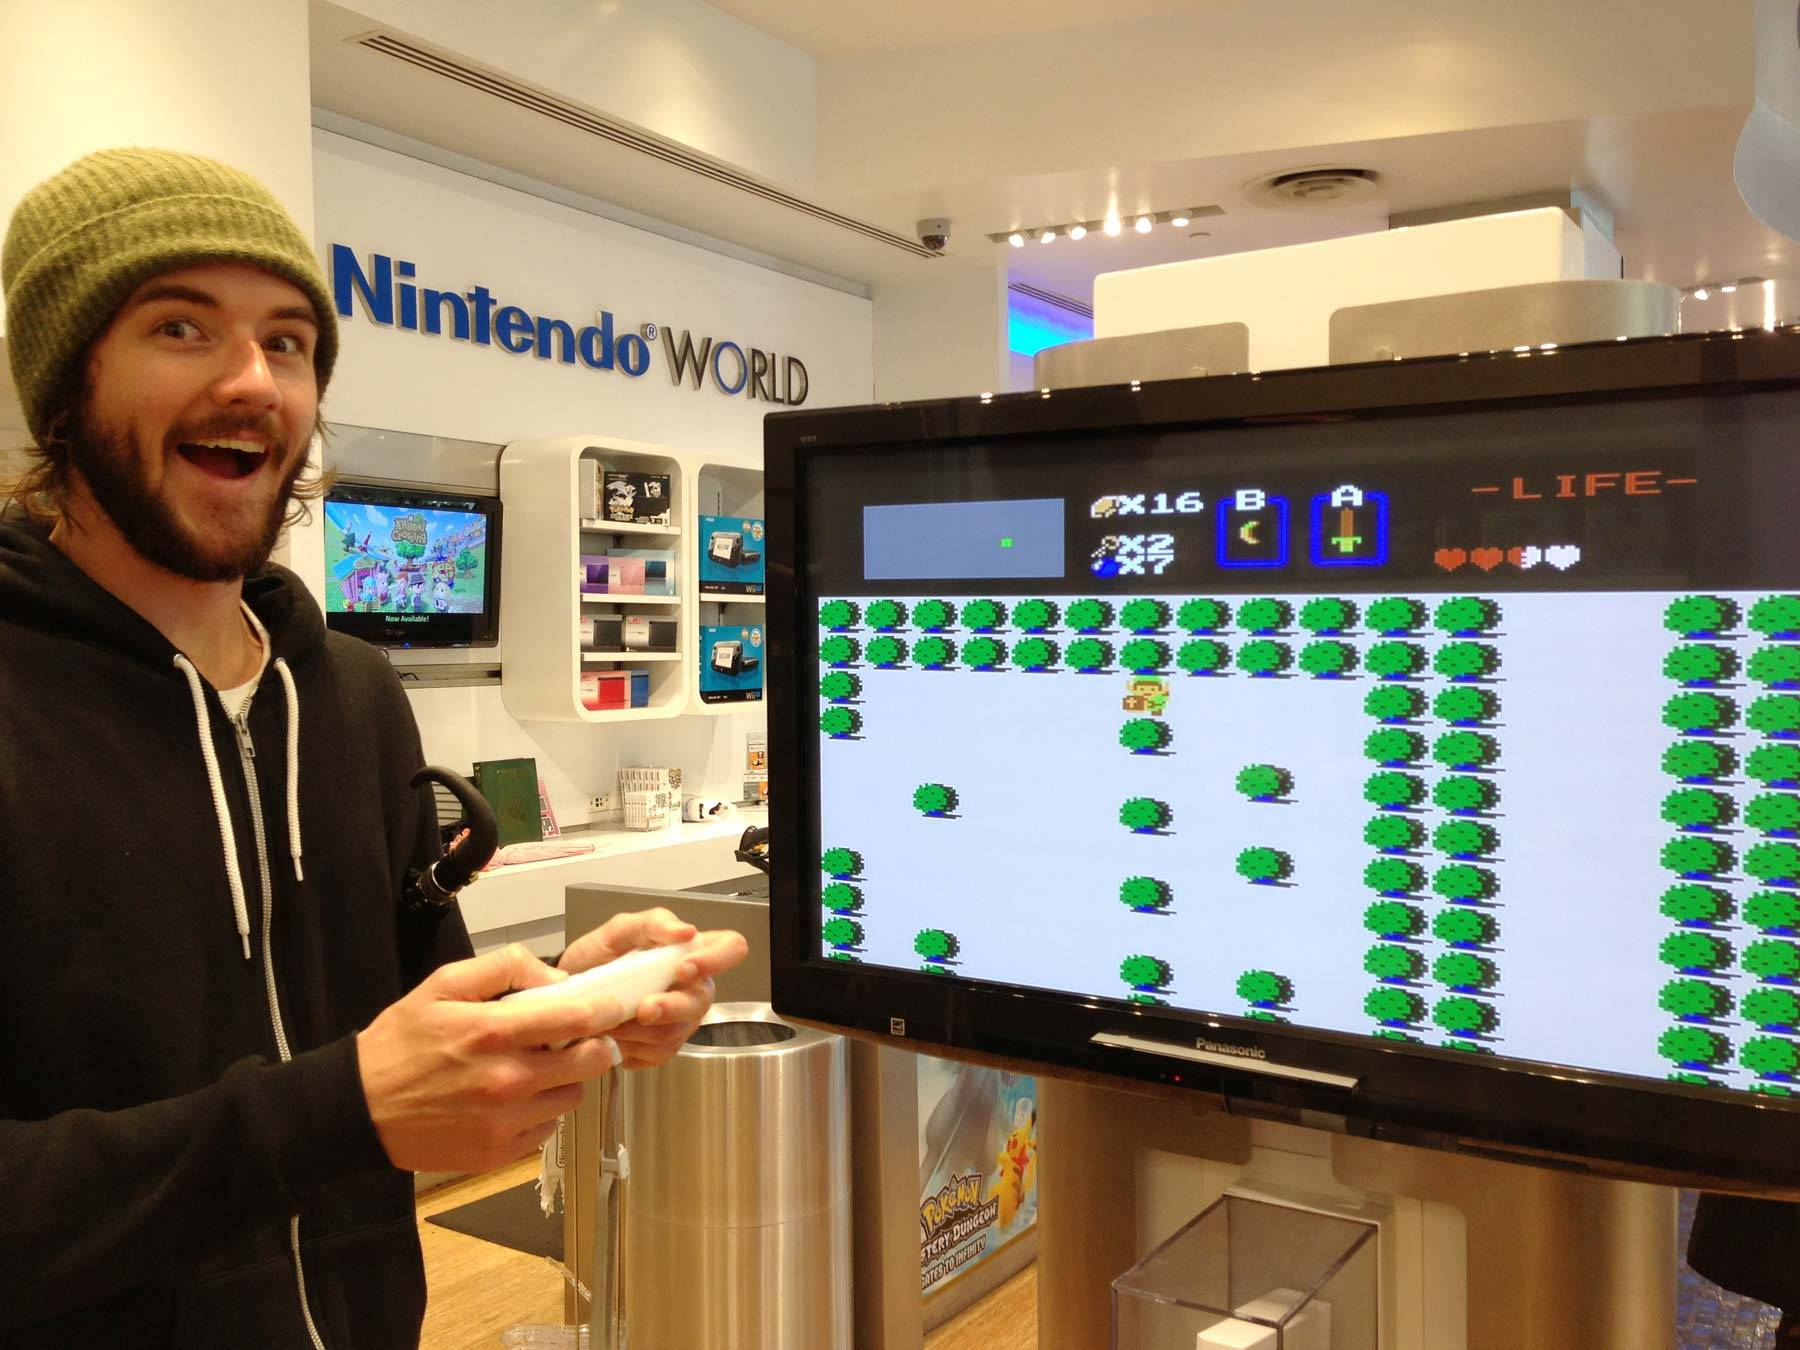 Butcher playing The Legend of Zelda on Wii Virtual Console